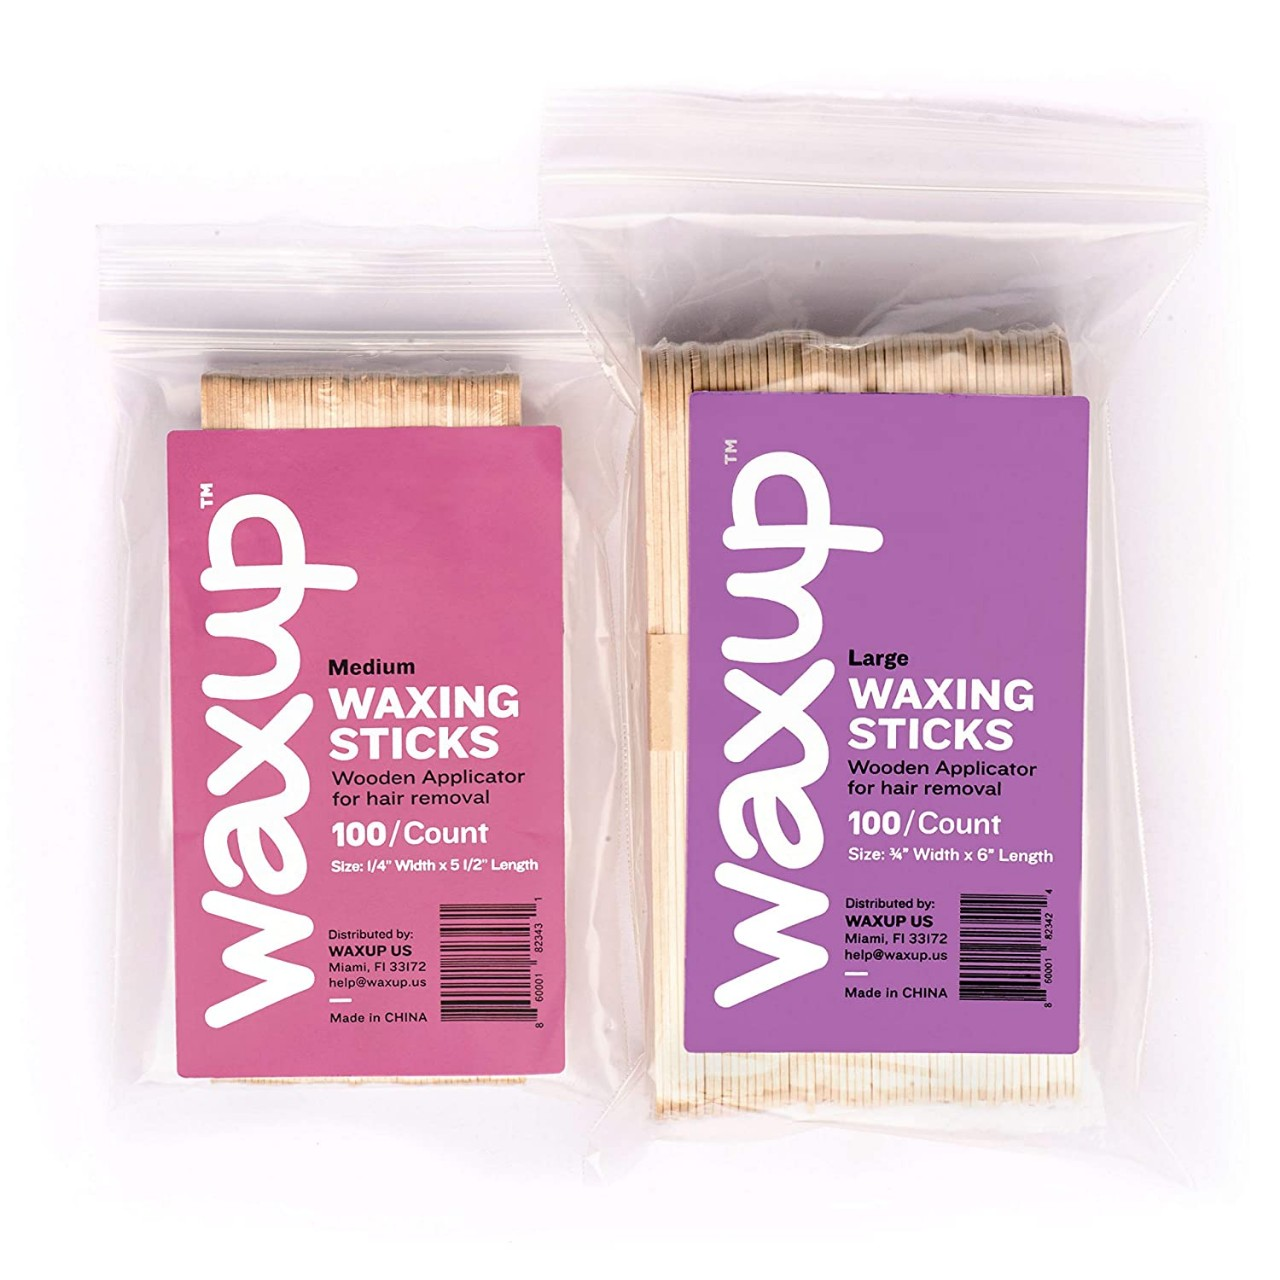 waxup Wax Sticks Wooden Applicators, Assorted Waxing Spatulas for Body, Face, Ear, and Nose Hair